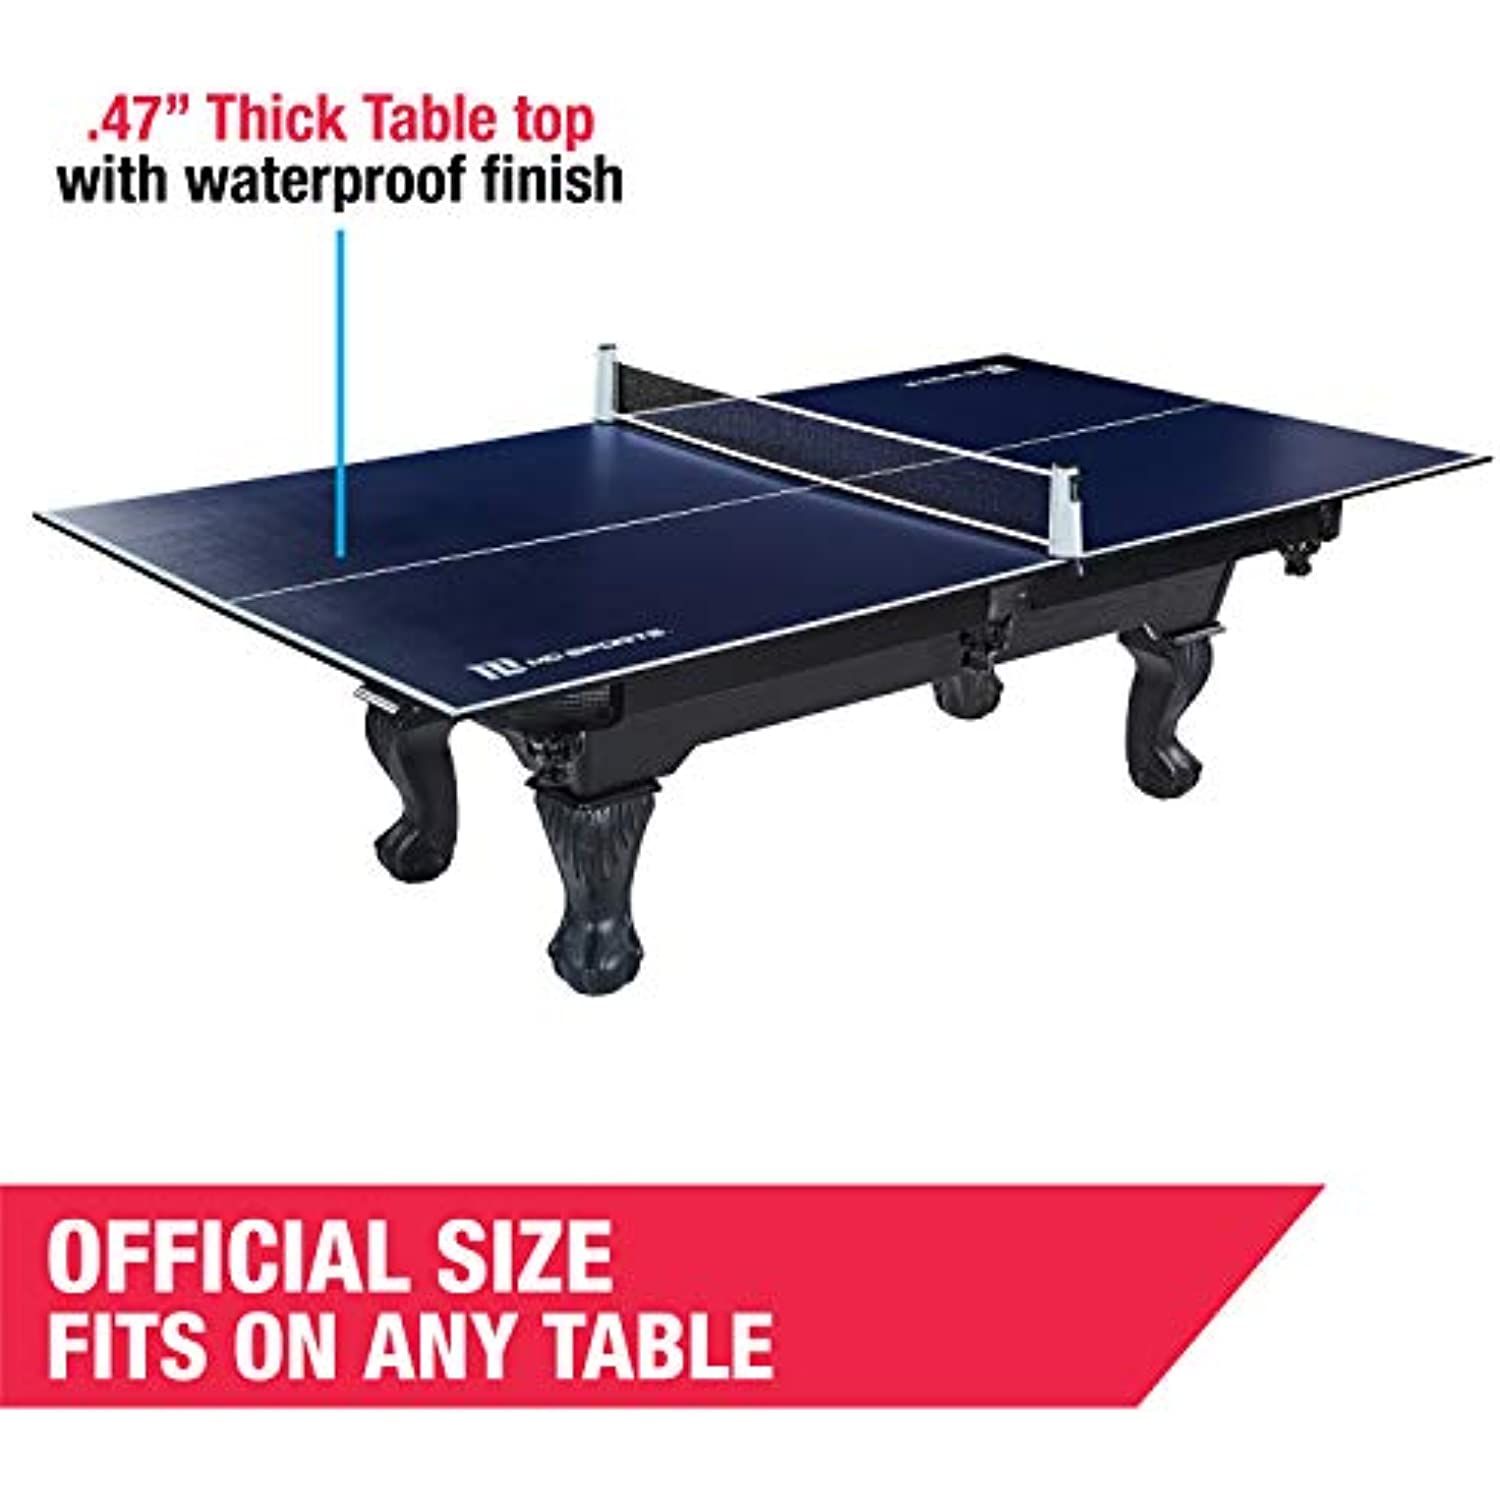 MD Sports Ping Pong and Table Tennis Conversion Tops, Regulation Size - Folding, Portable Tennis Top with Net - Fits Standard Air Hockey and Pool Tables - Fun, Easy Setup Game Equipment, Blue & White